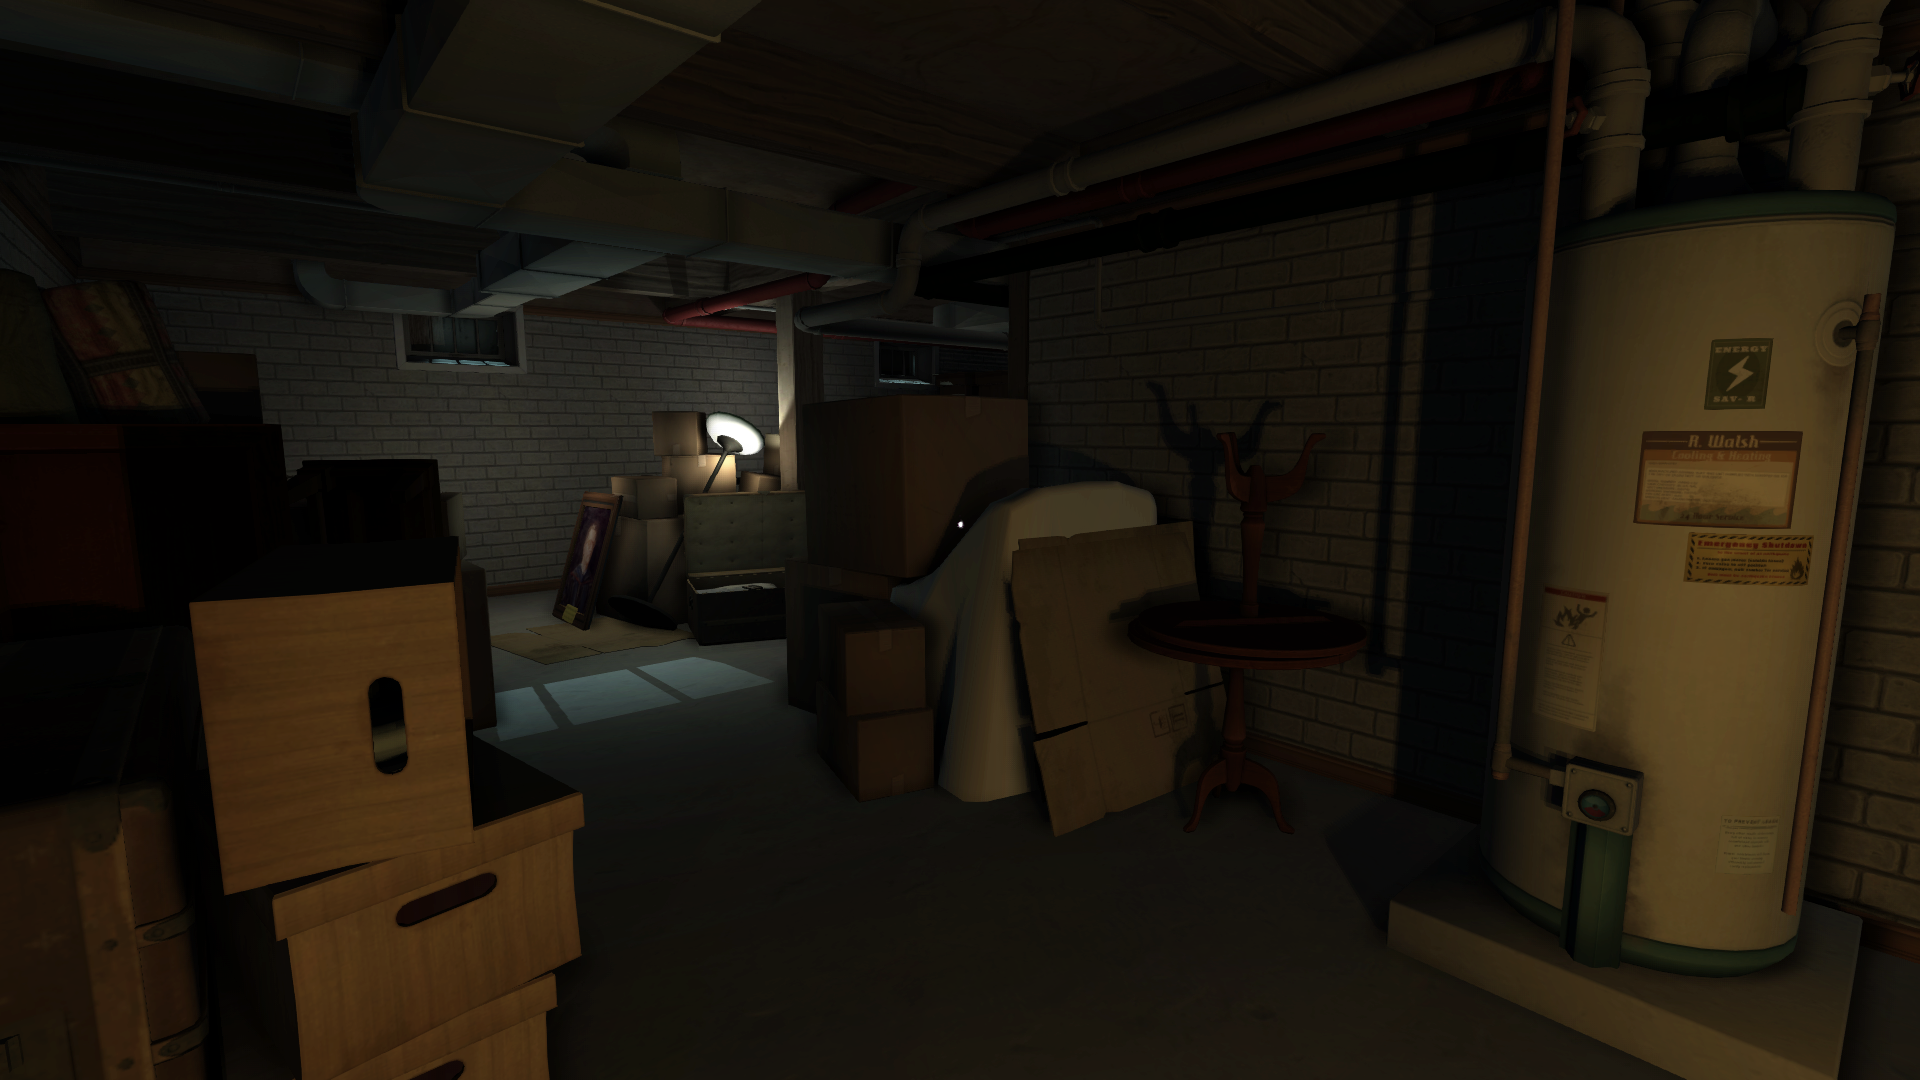 Gone Home , Basement, 2013. Image courtesy of The Fullbright Company.